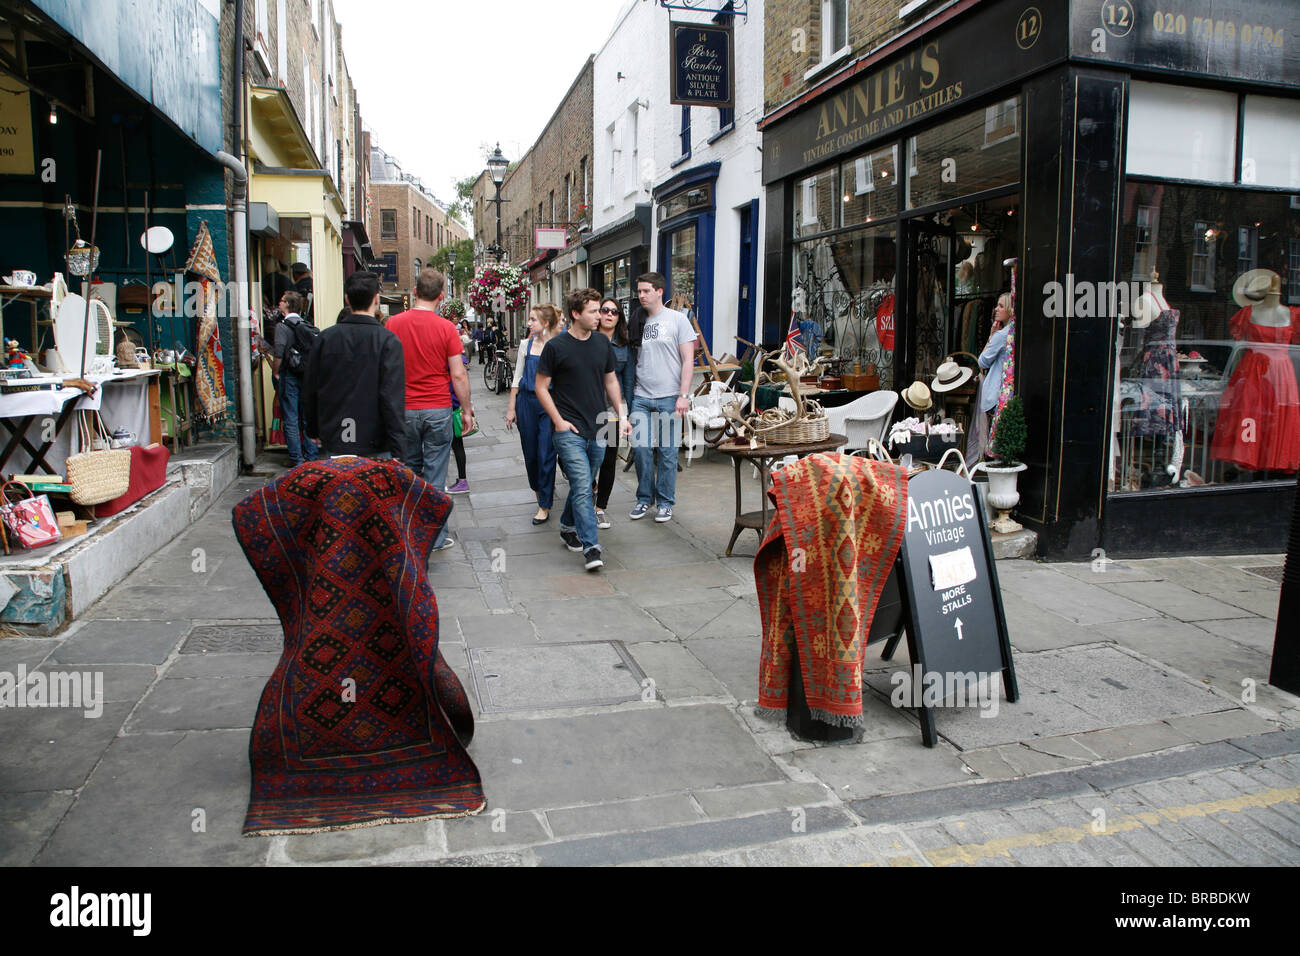 Rugs for sale at Camden Passage antiques market, Islington, London, UK - Stock Image